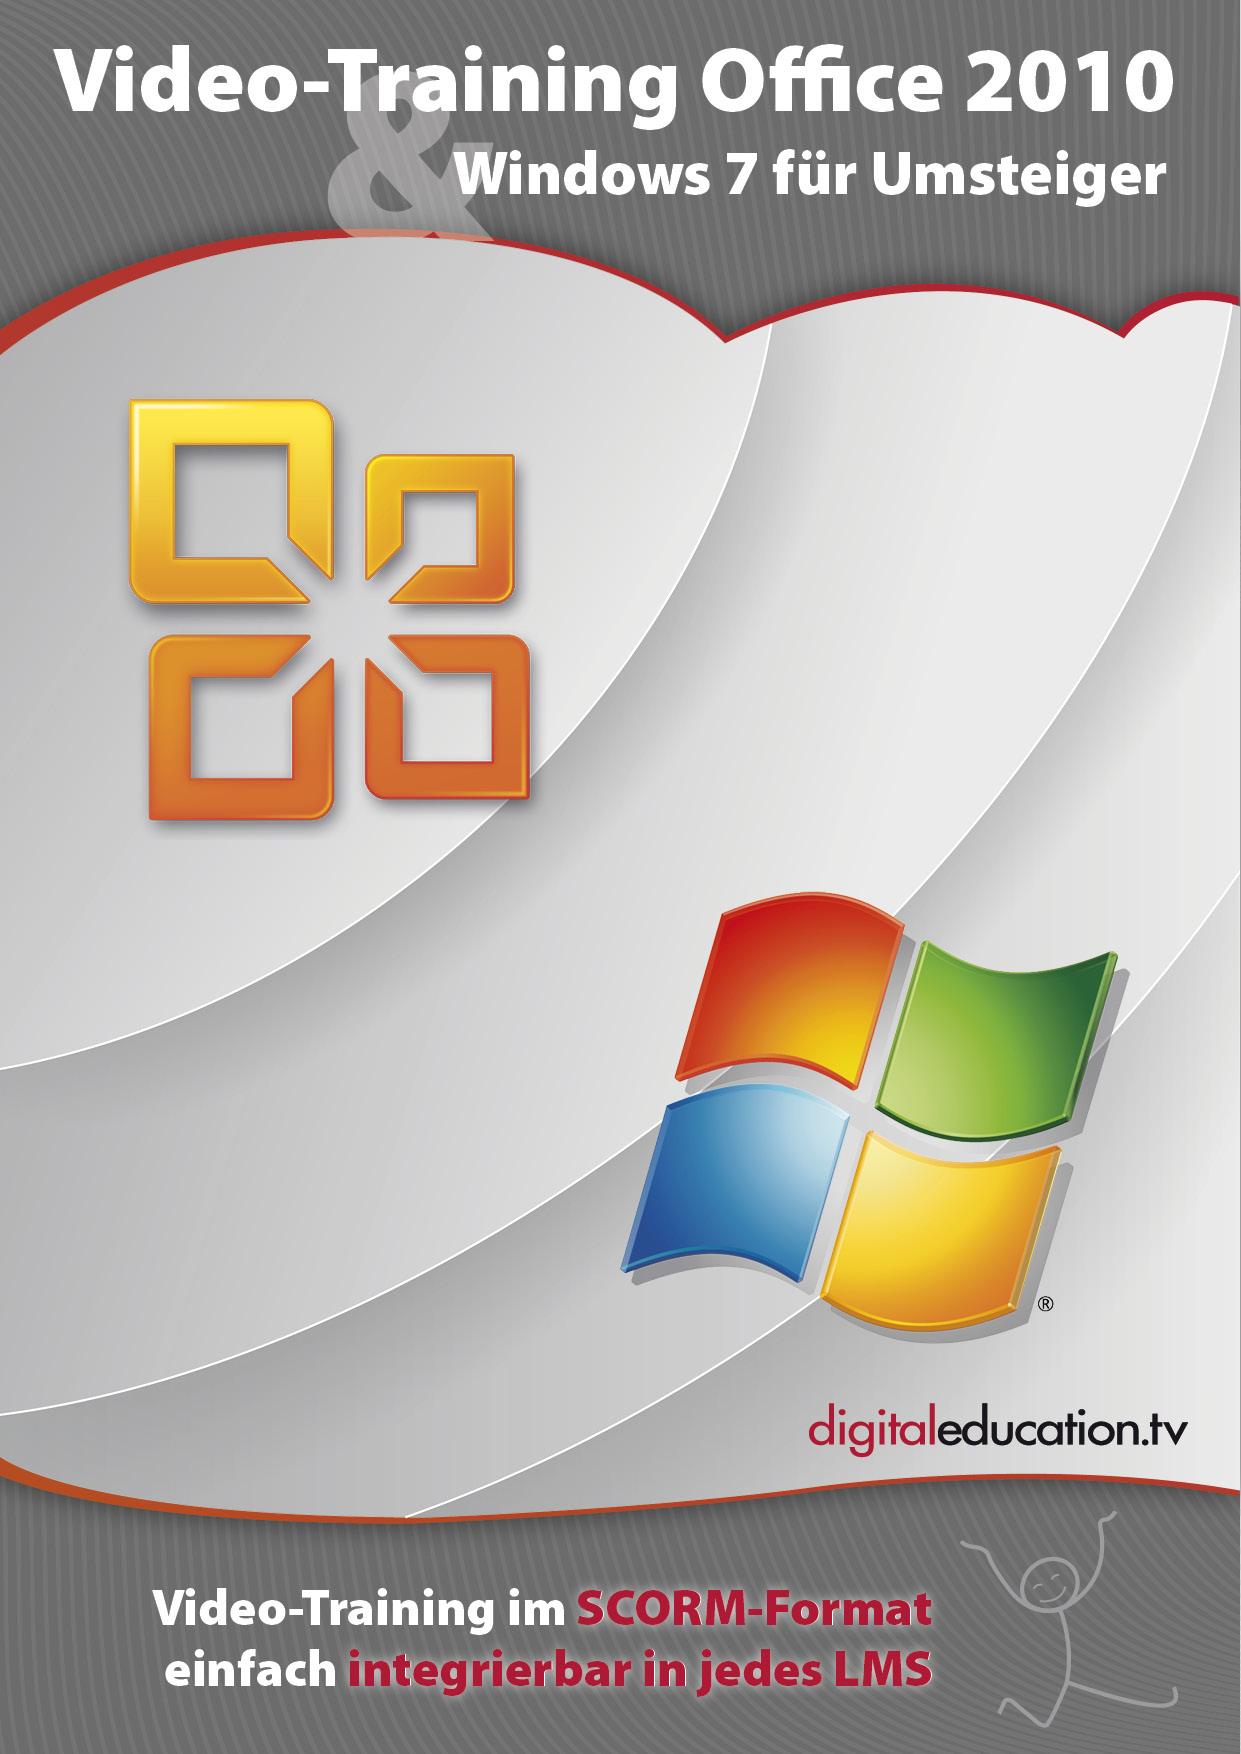 Products_office10_win7.jpg